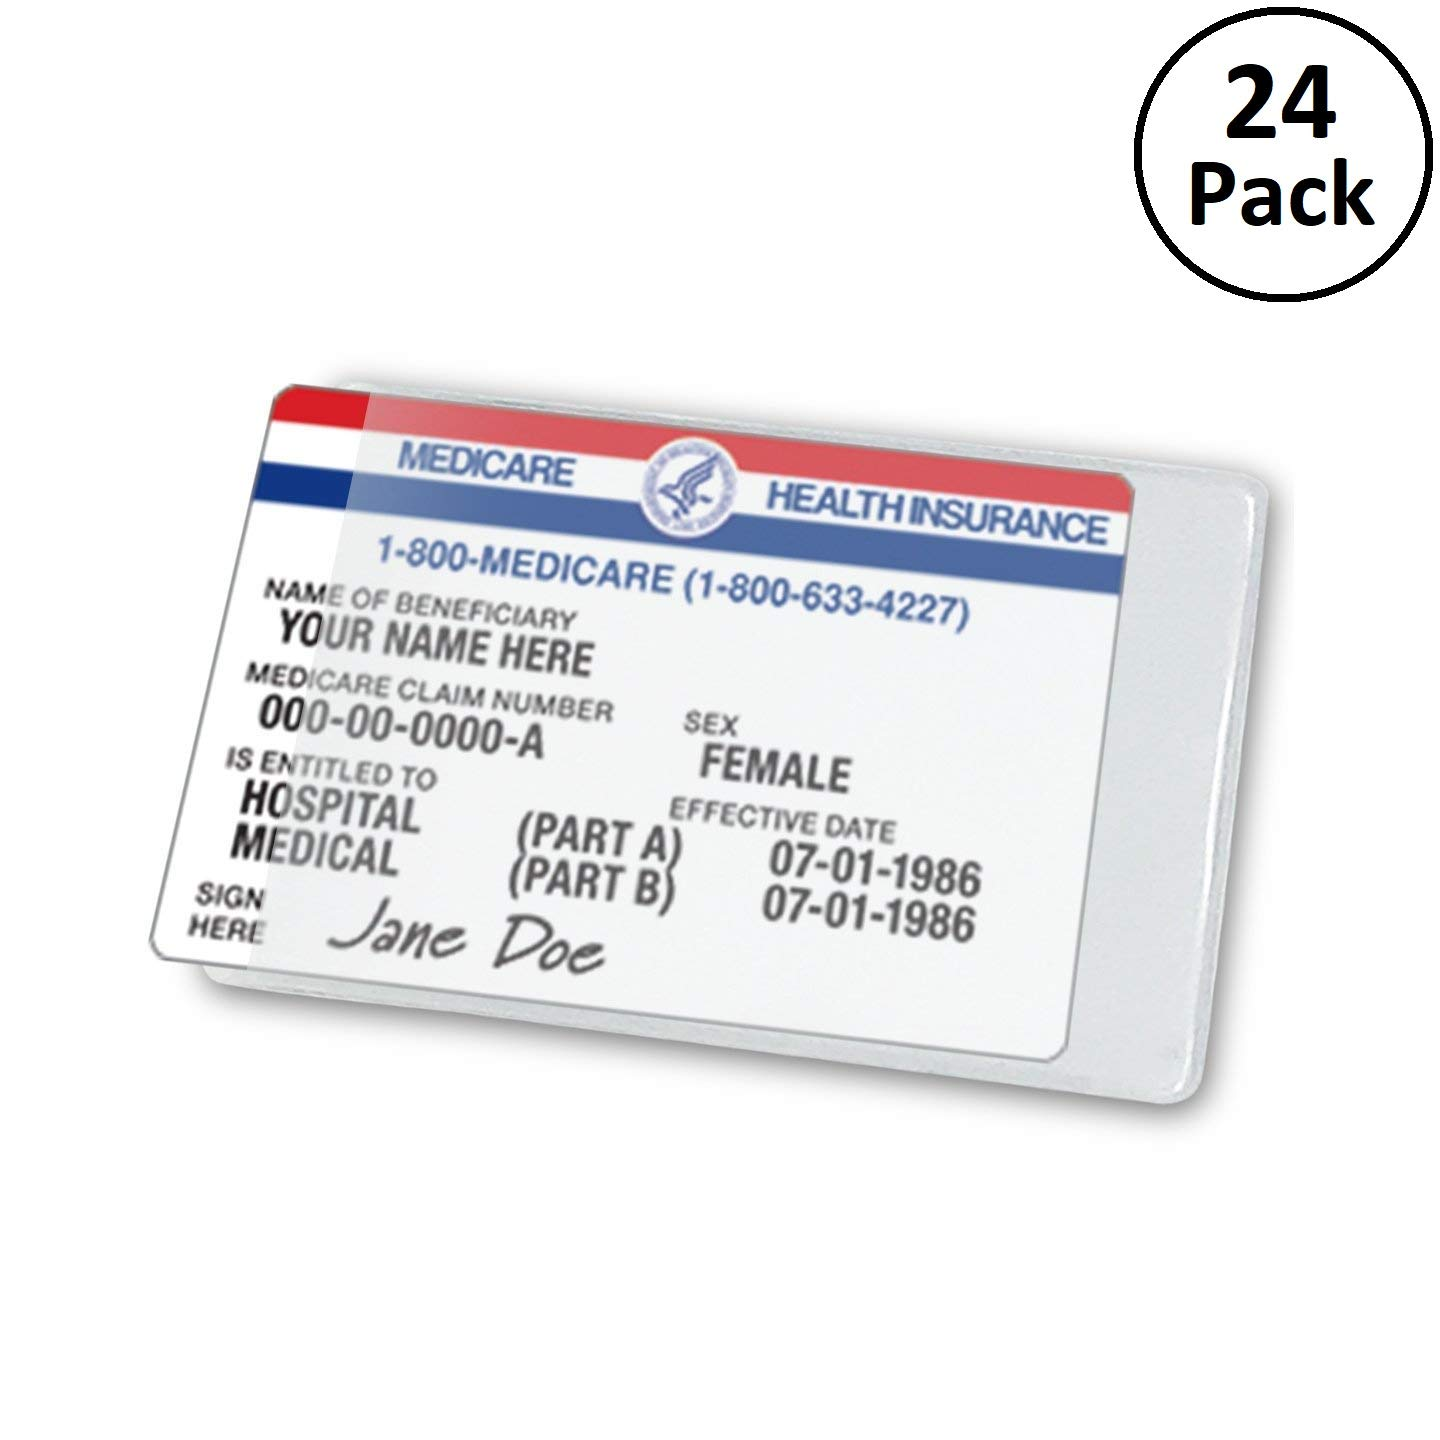 Clear Large Medicare Card Size Credit Card Protector Sleeves, 6 Mil Thickness, 24 Pack